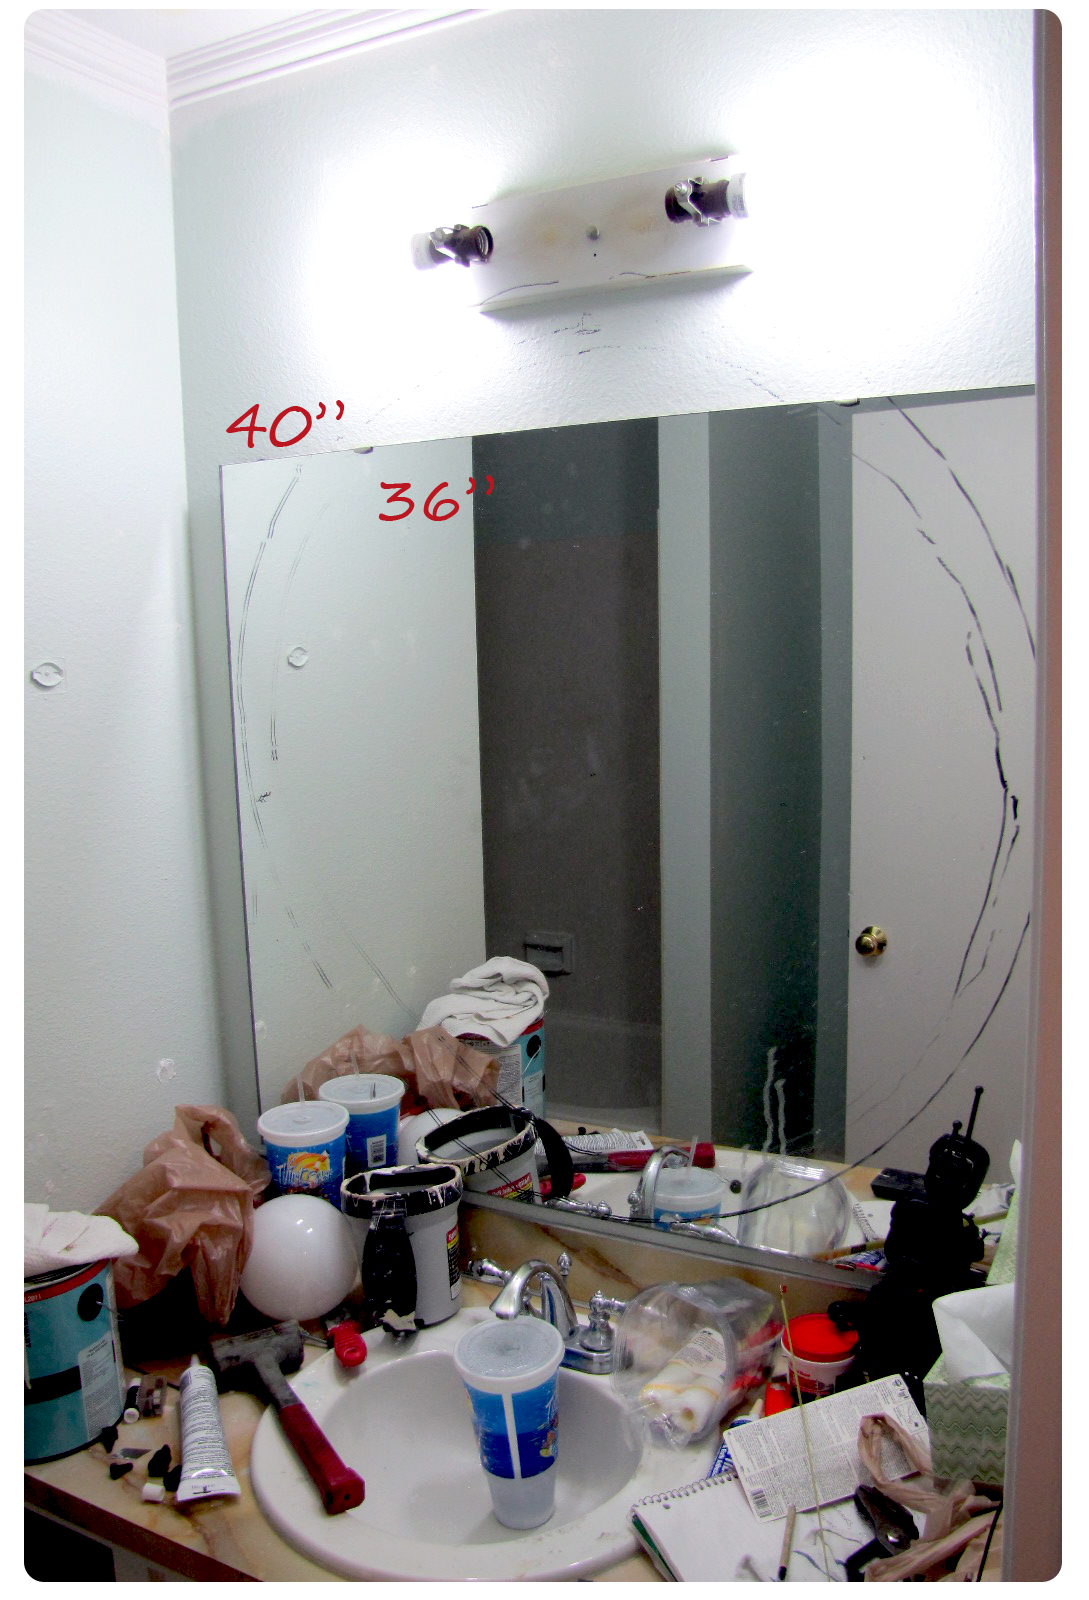 Tips on how to decide on what size mirror to buy